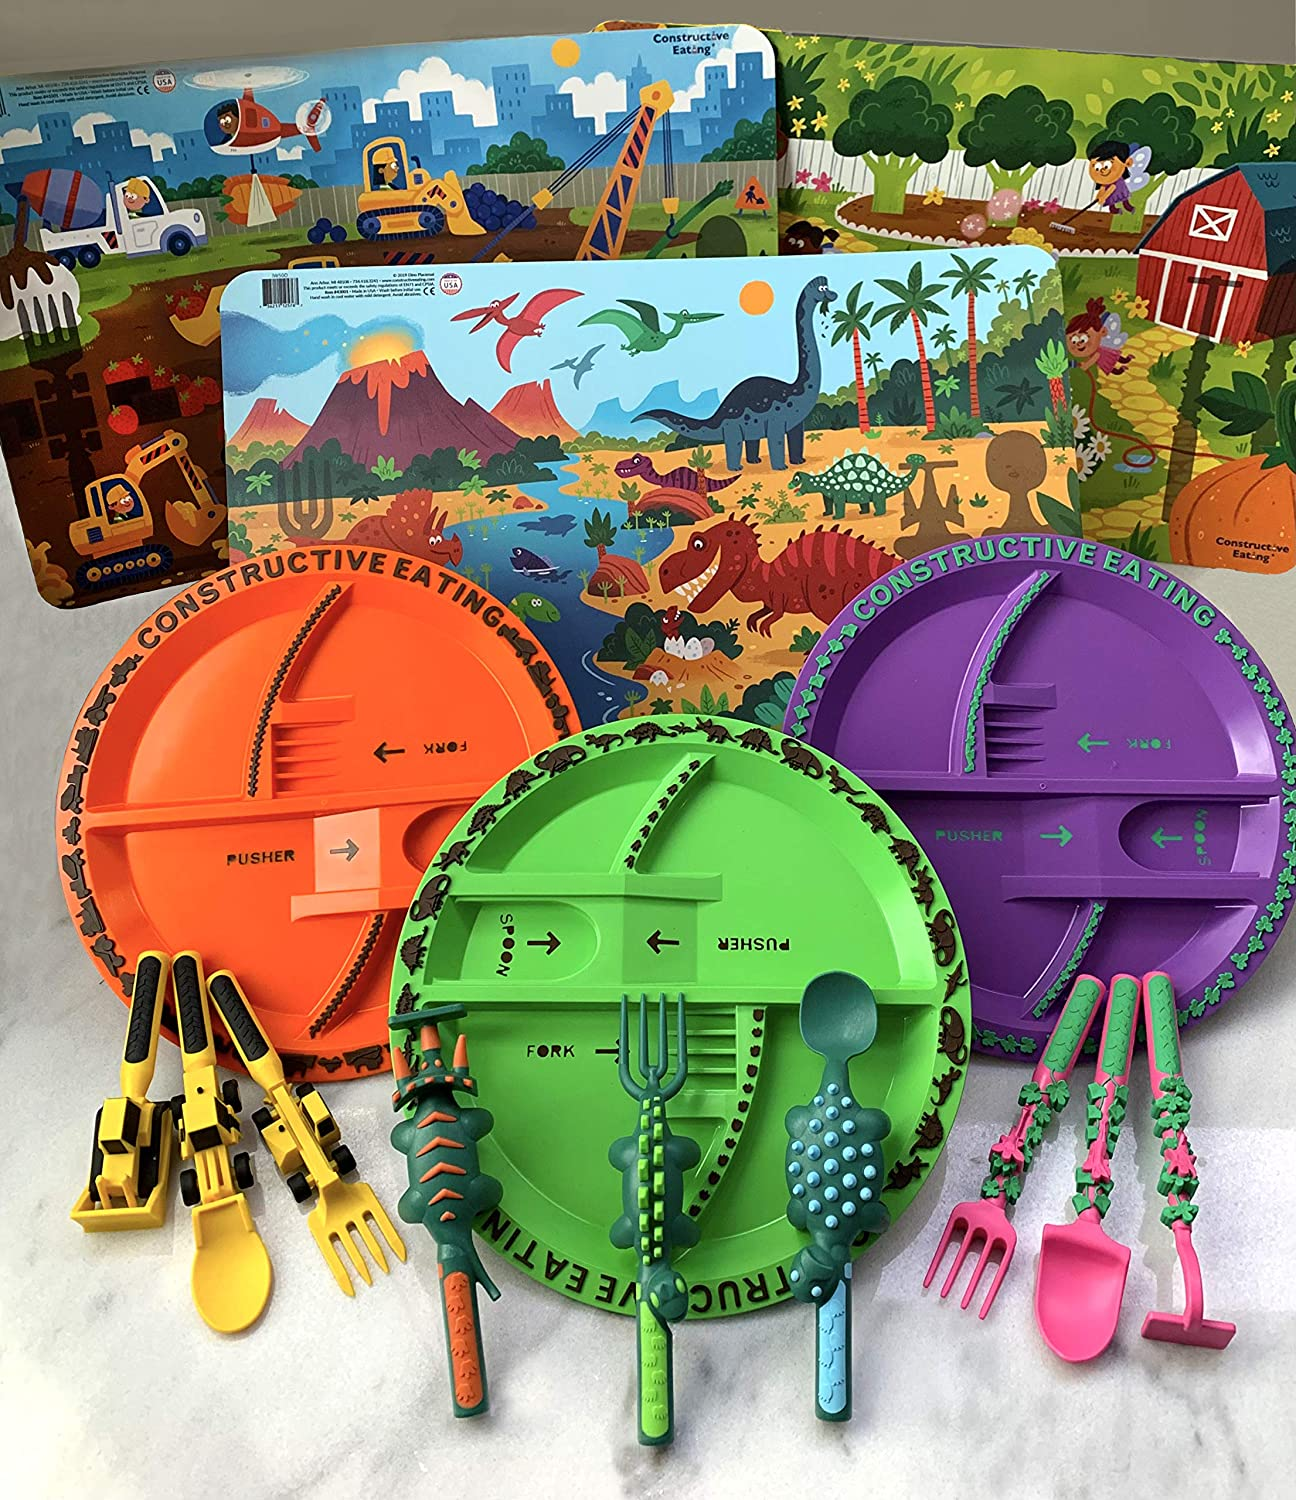 Constructive Eating Construction, Dinosaur, and Garden Fairy Combo with 3 Utensil Sets, Plates, and Placemats for Toddlers, Infants, Babies and Kids - Made in The USA Using Materials Tested for Safety